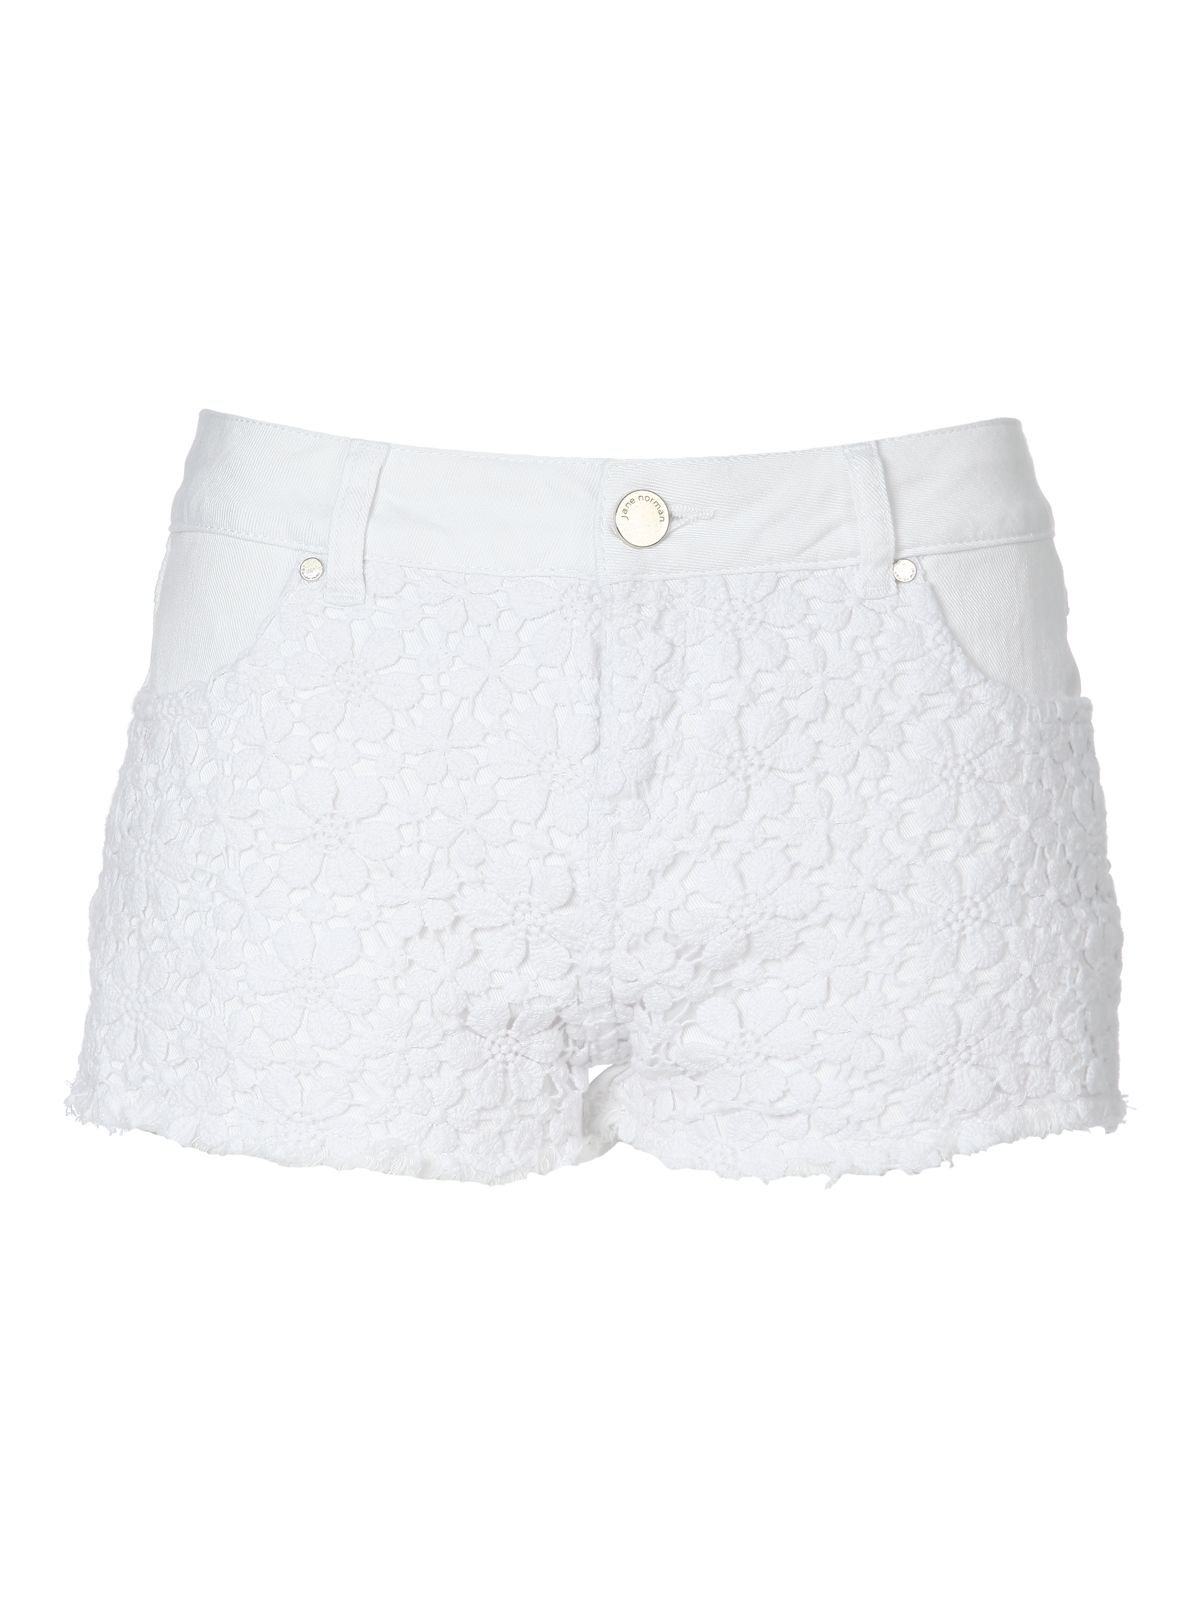 Crochet Denim Hotpant Shorts